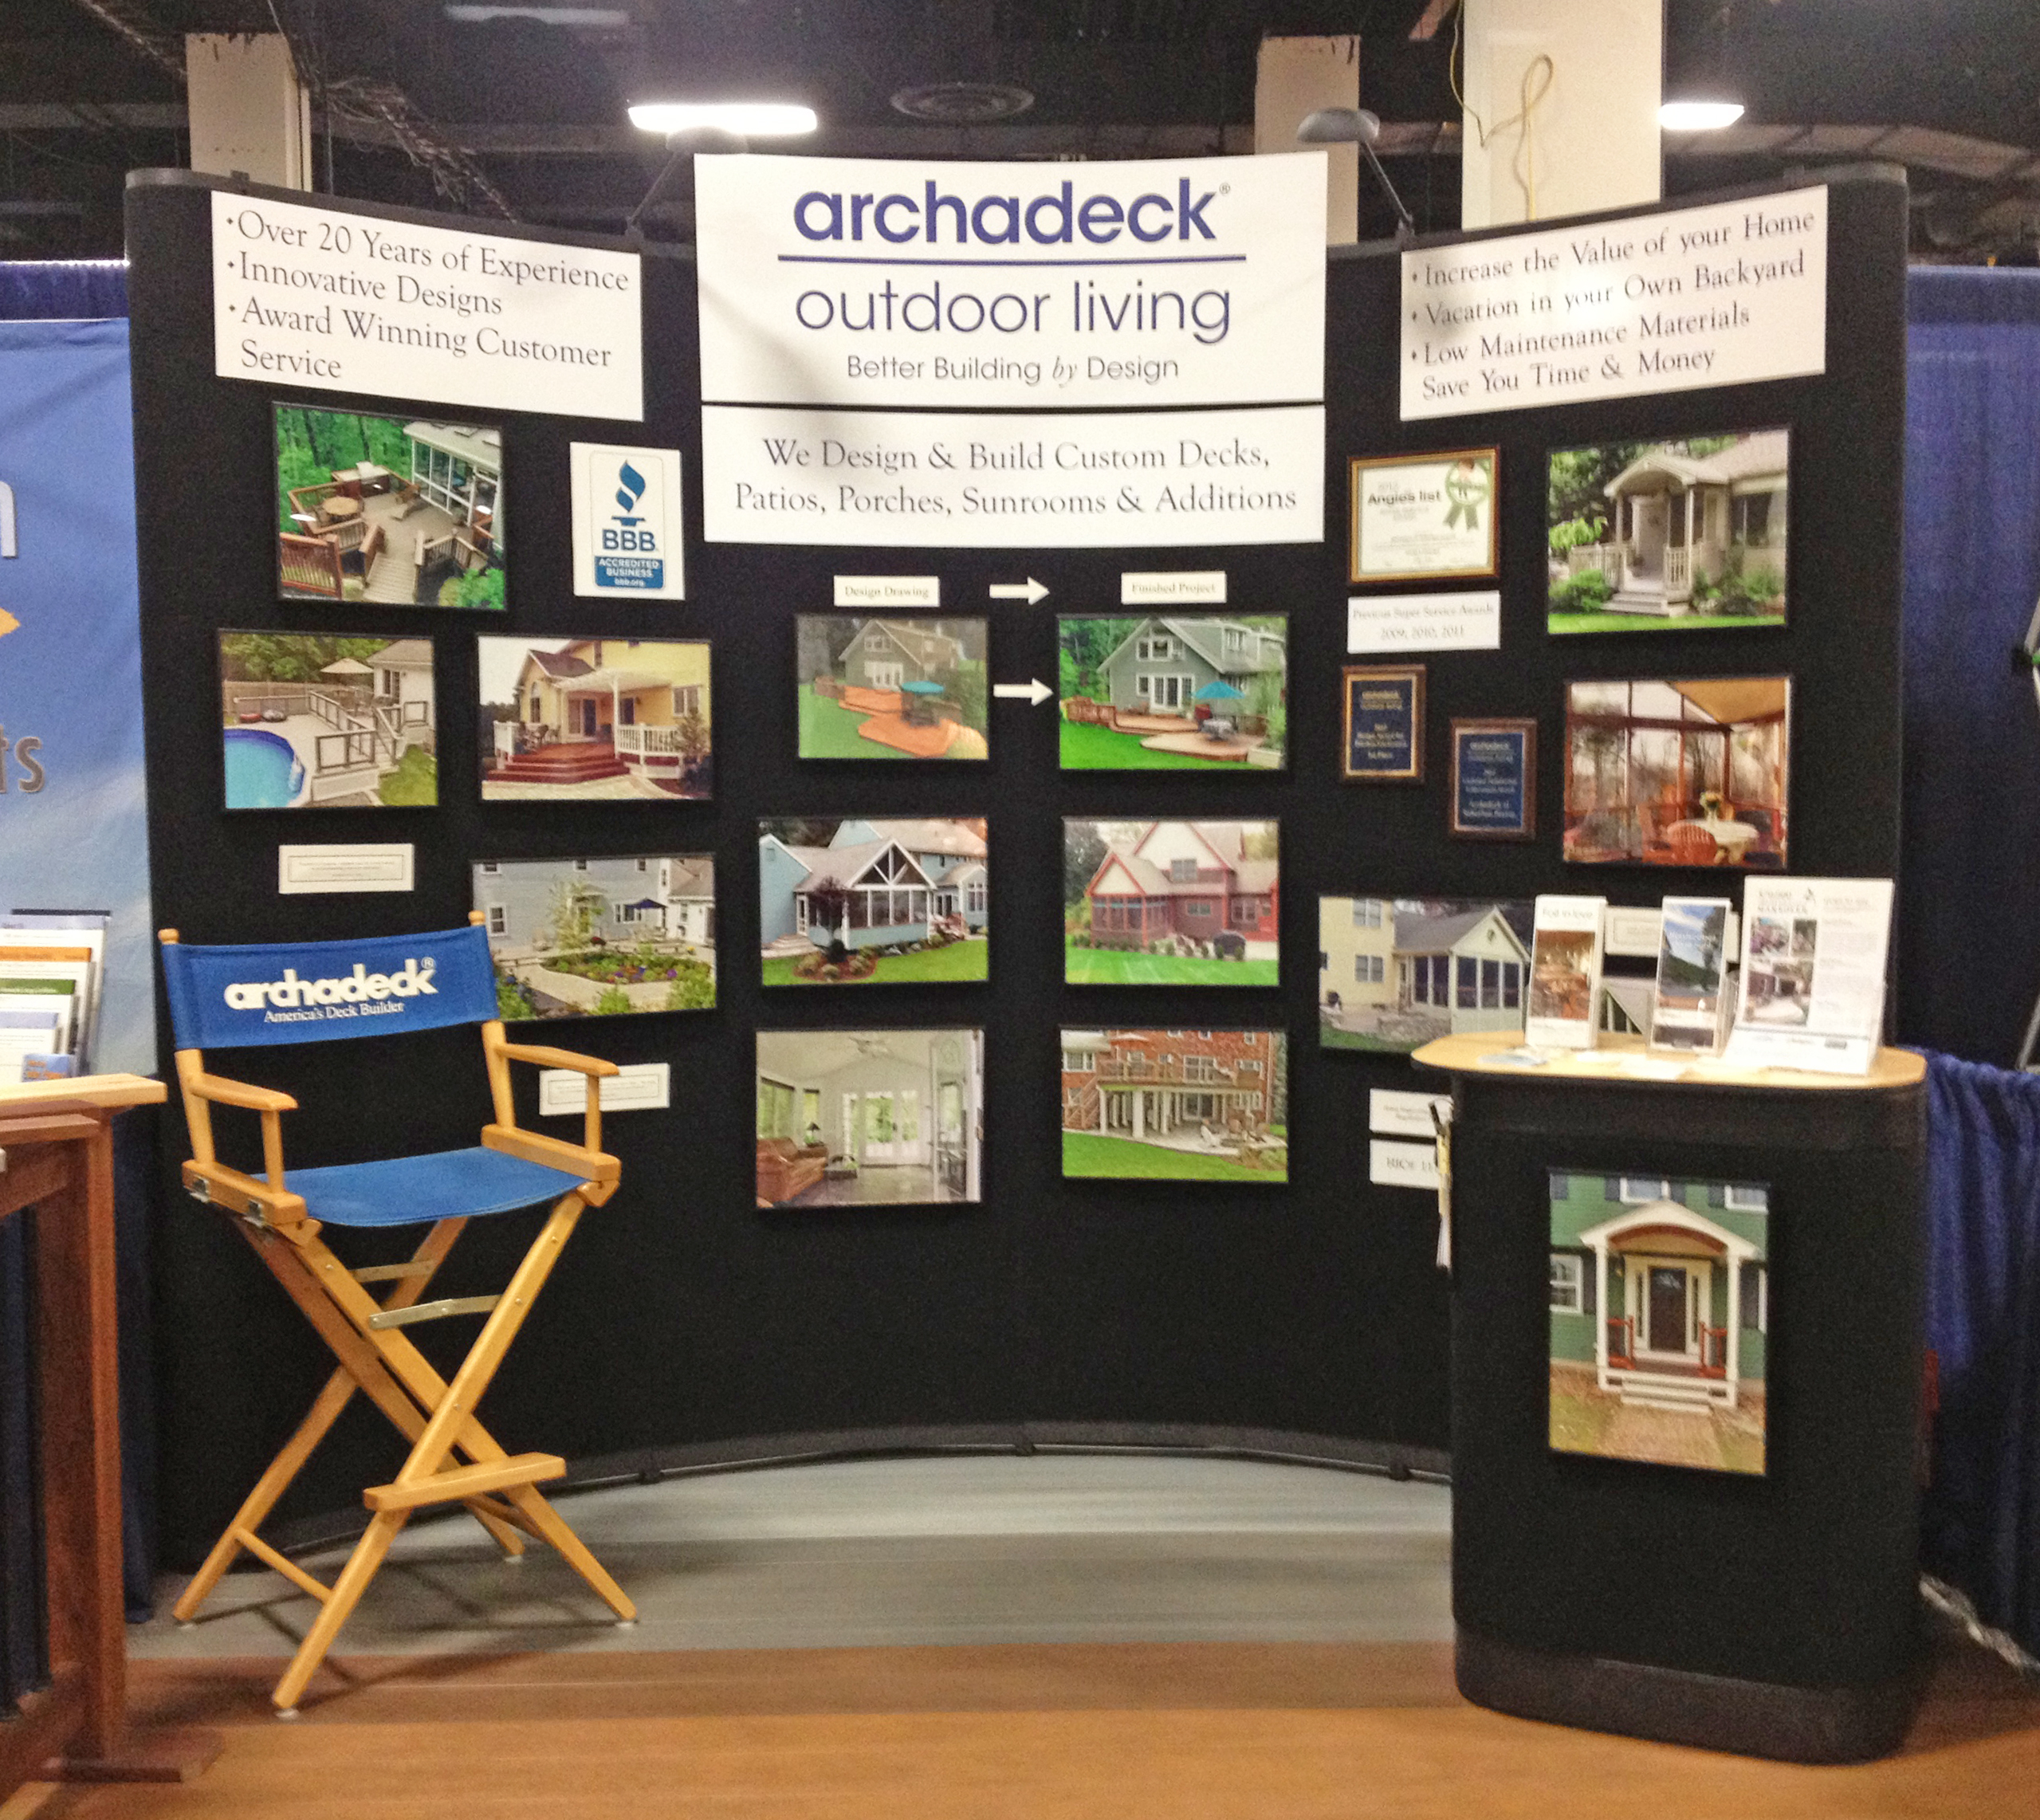 Home And Trade Shows Custom Decks Porches Patios Sunrooms And More